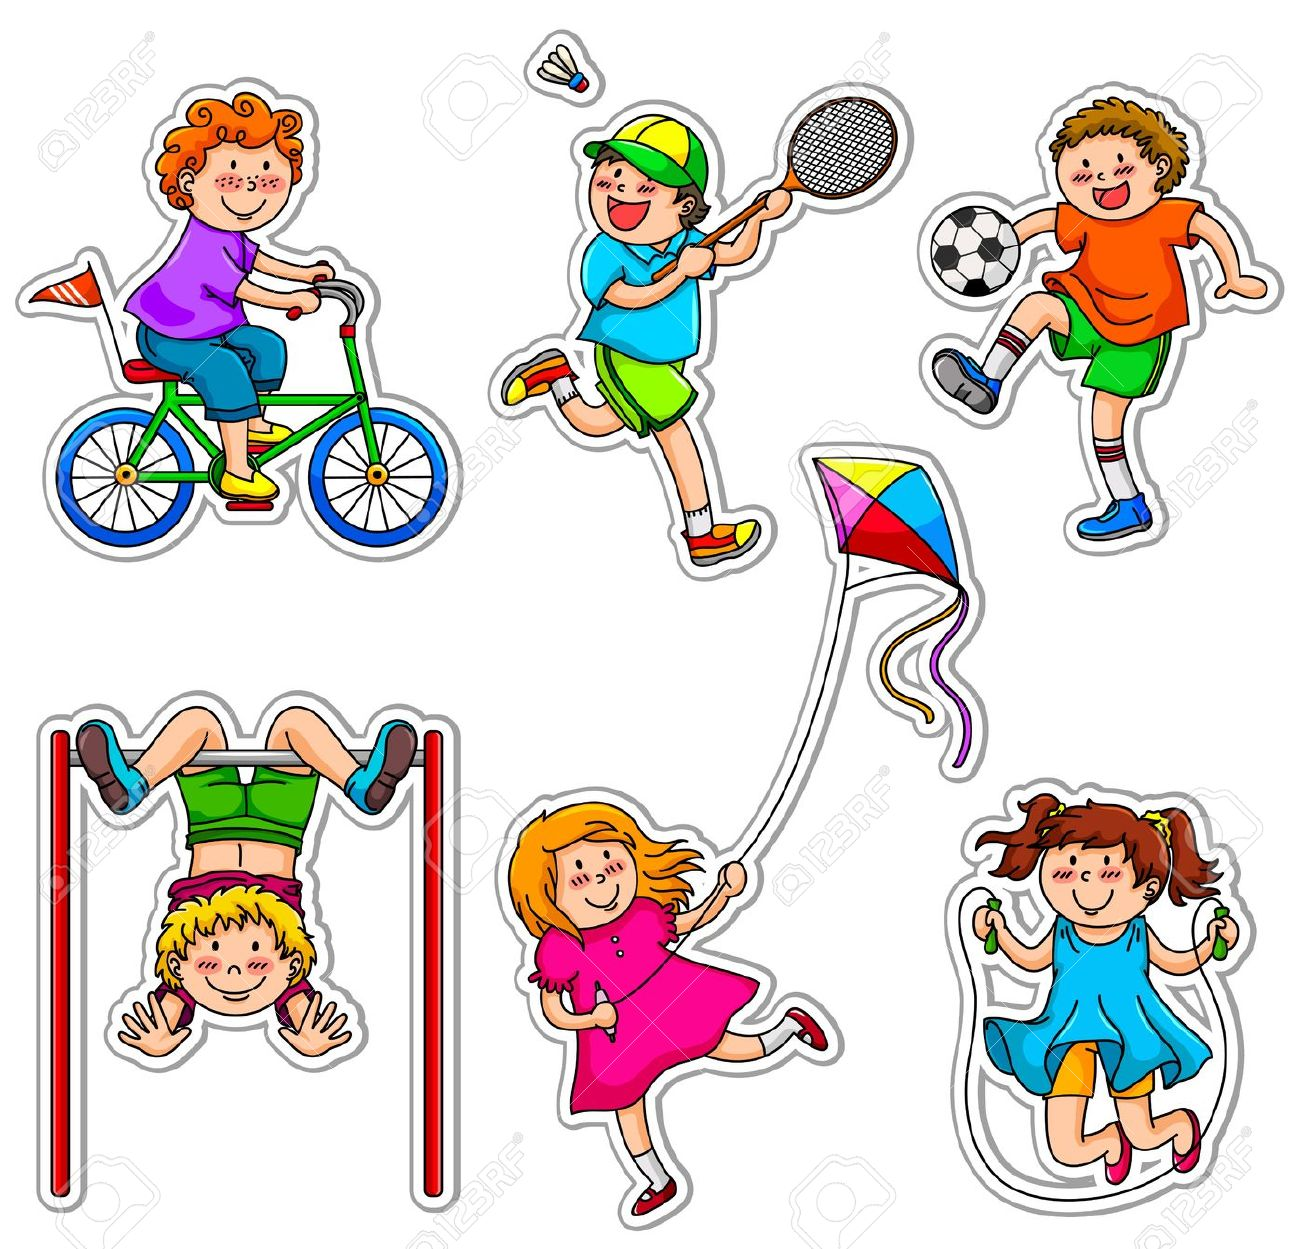 Kids Doing Physical Activities Through Play Royalty Free Cliparts, Vectors,  And Stock Illustration.